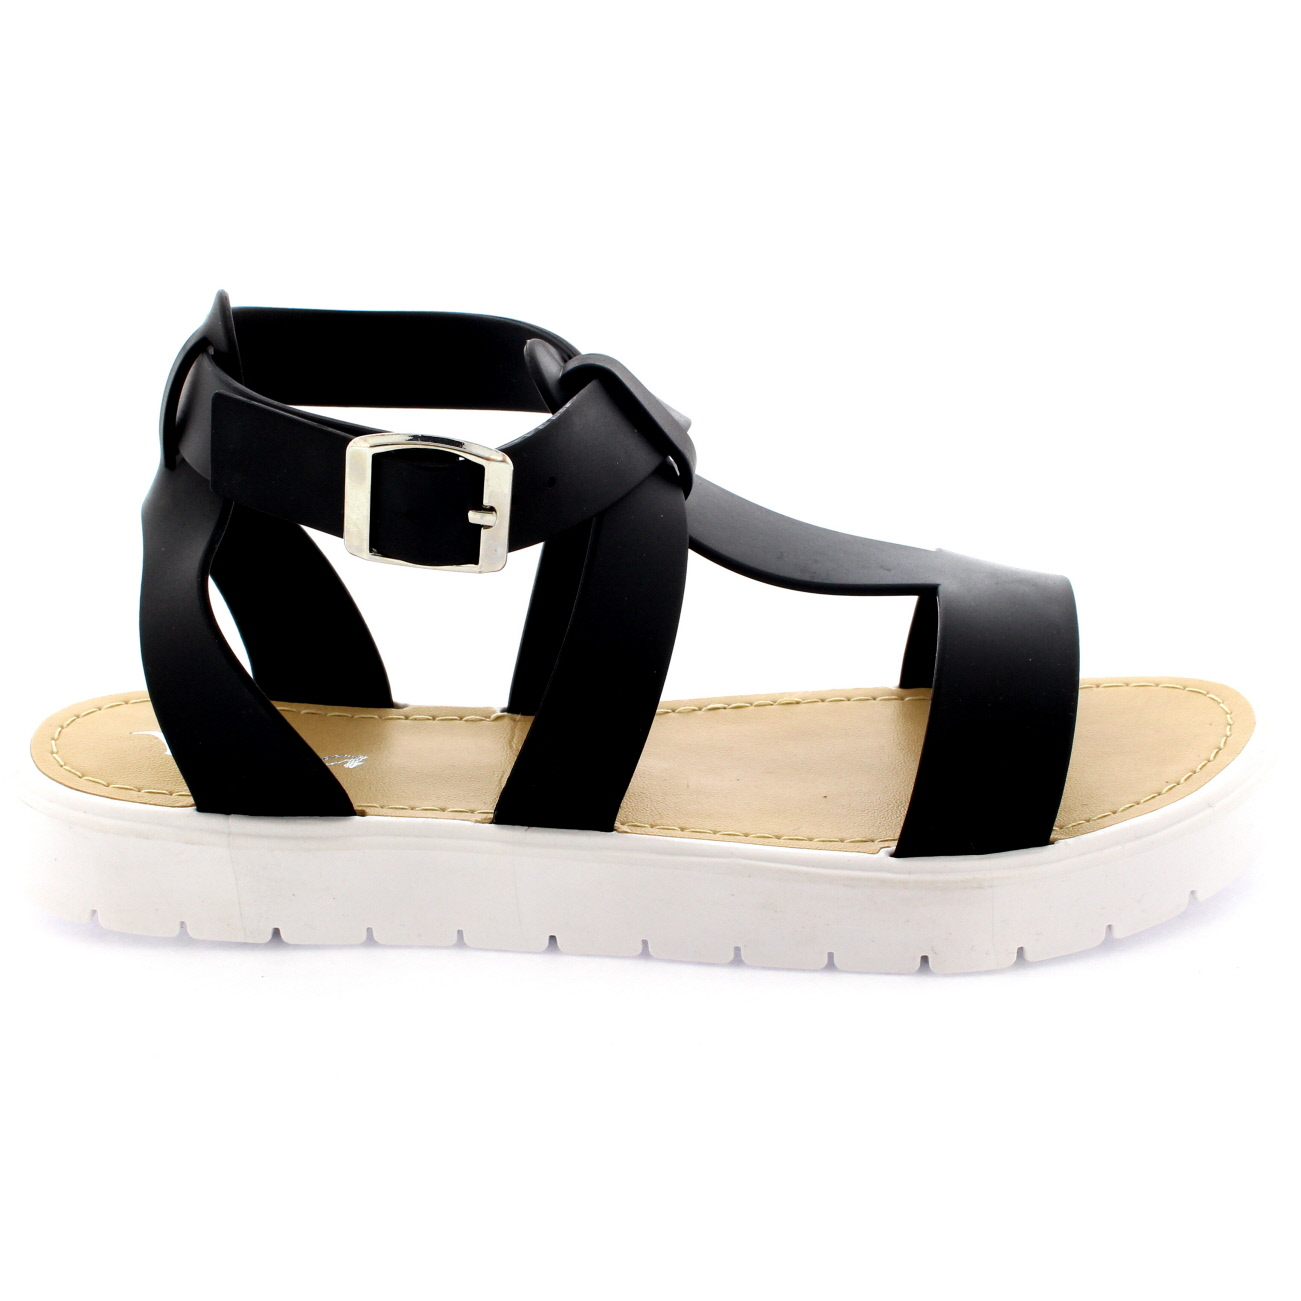 womens open toe shoes cleated sole white platform t bar